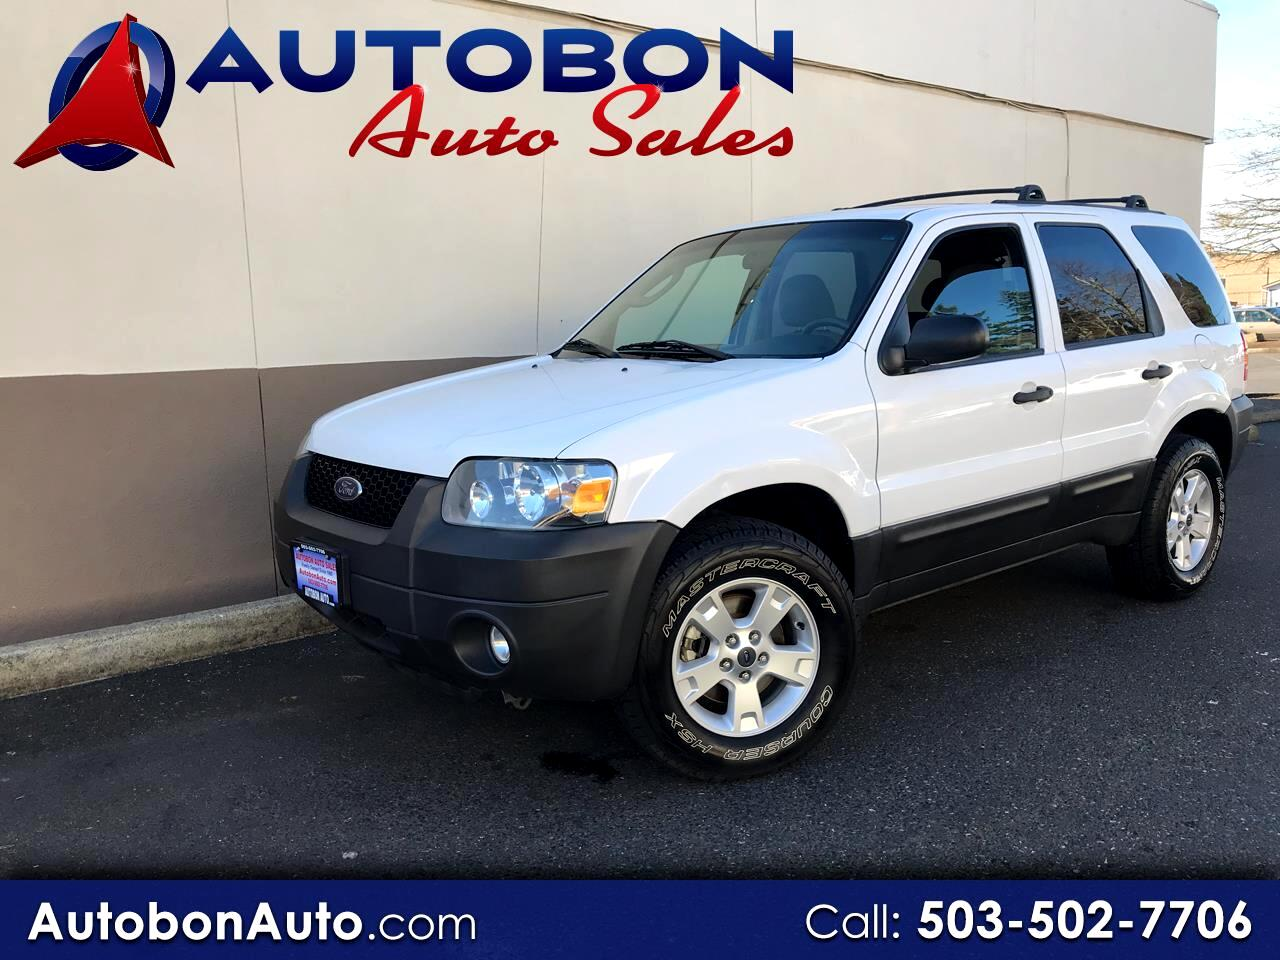 2007 Ford Escape 4WD 4dr V6 Auto XLT